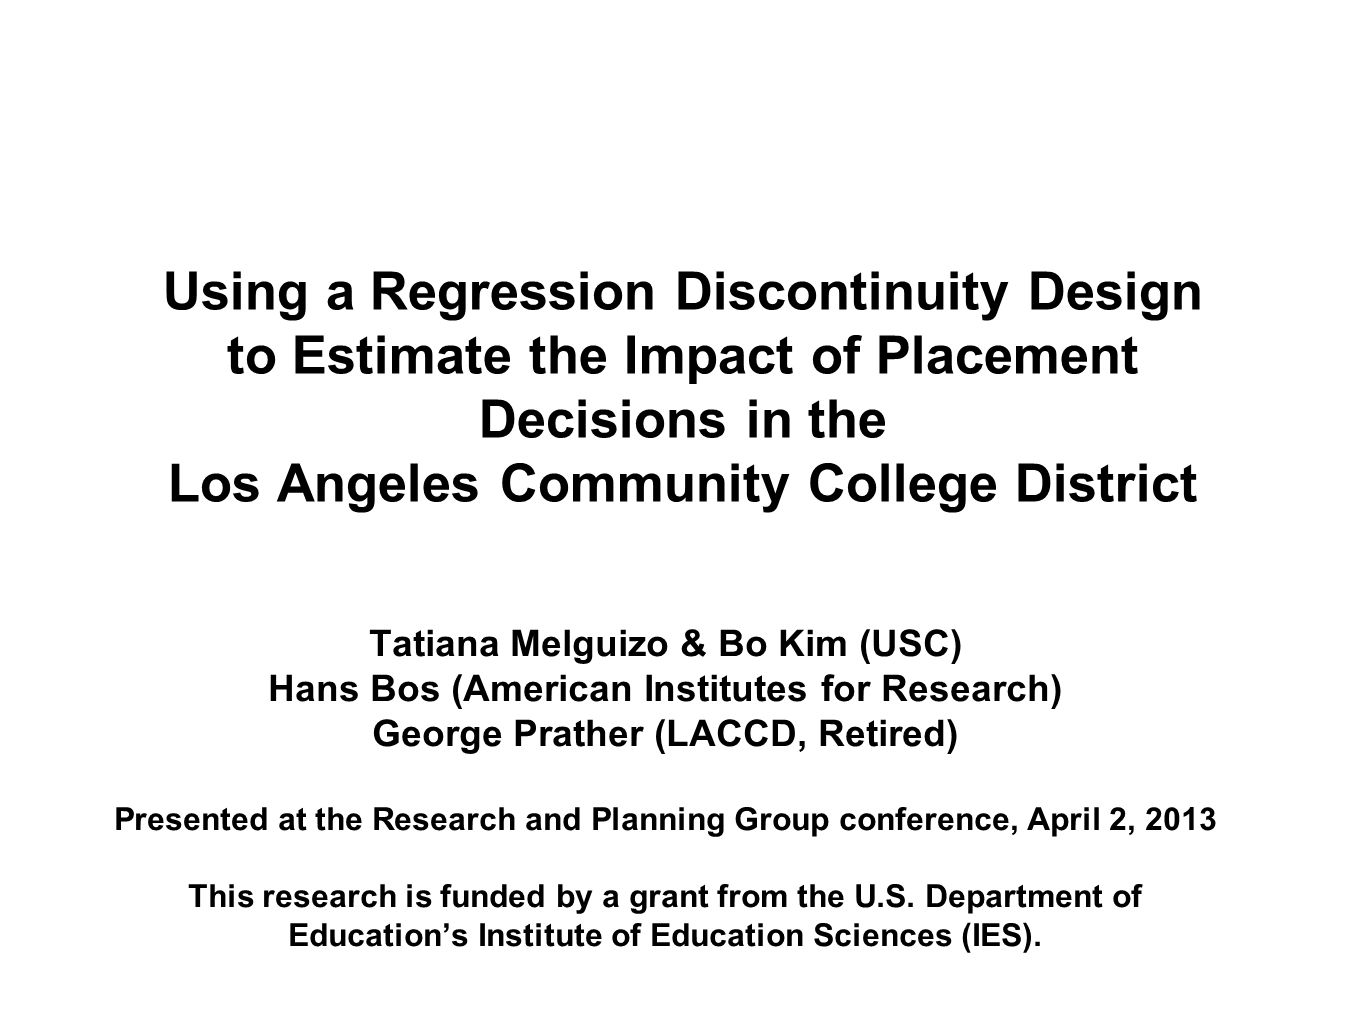 Using a Regression Discontinuity Design to Estimate the Impact of Placement Decisions in the Los Angeles Community College District Tatiana Melguizo & Bo Kim (USC) Hans Bos (American Institutes for Research) George Prather (LACCD, Retired) Presented at the Research and Planning Group conference, April 2, 2013 This research is funded by a grant from the U.S.